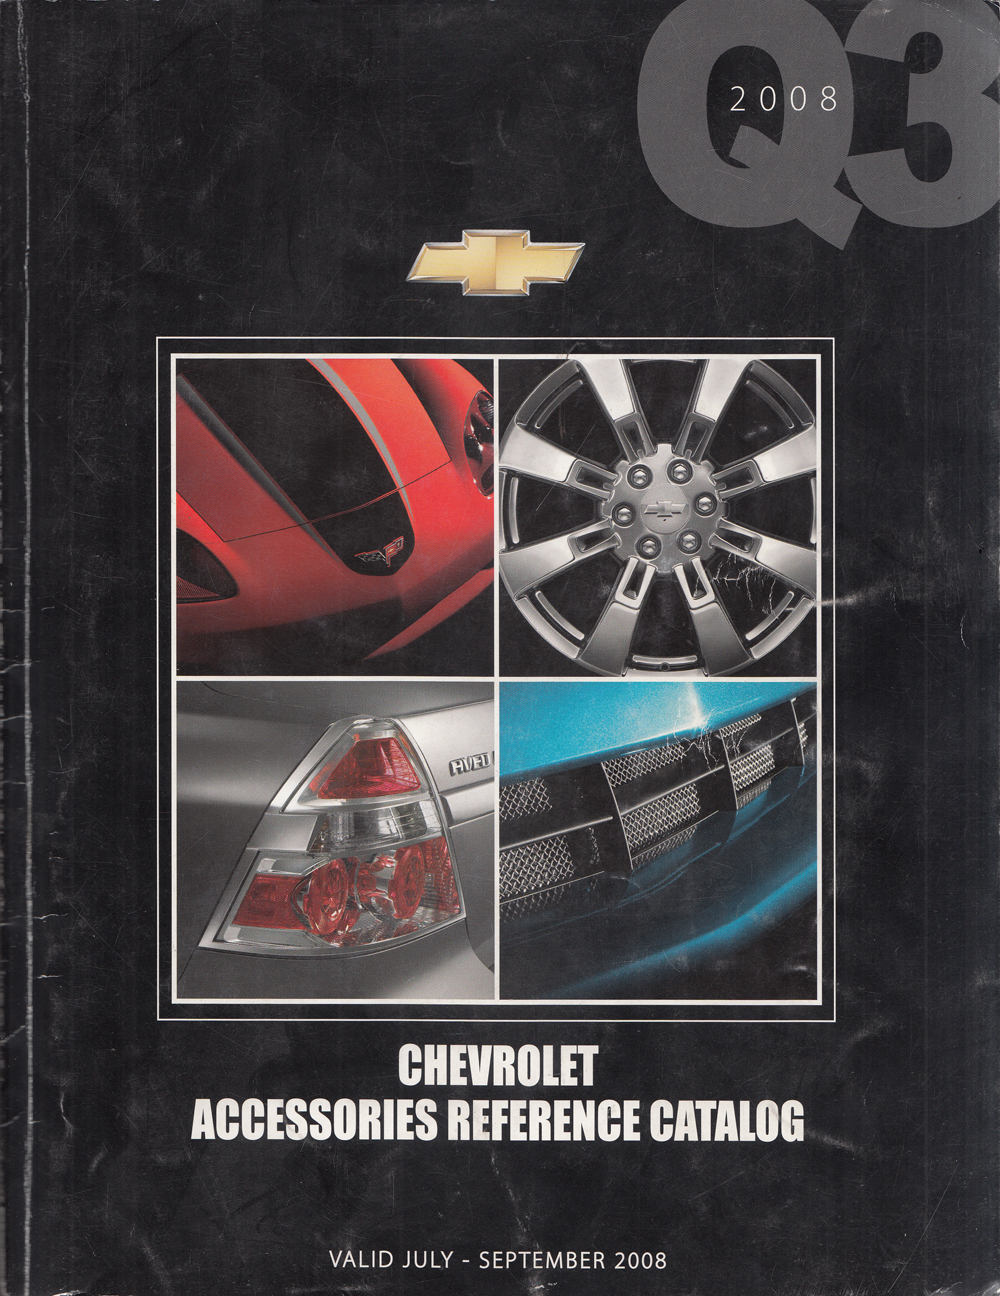 2008 Chevrolet Accessories Reference Catalog Q3